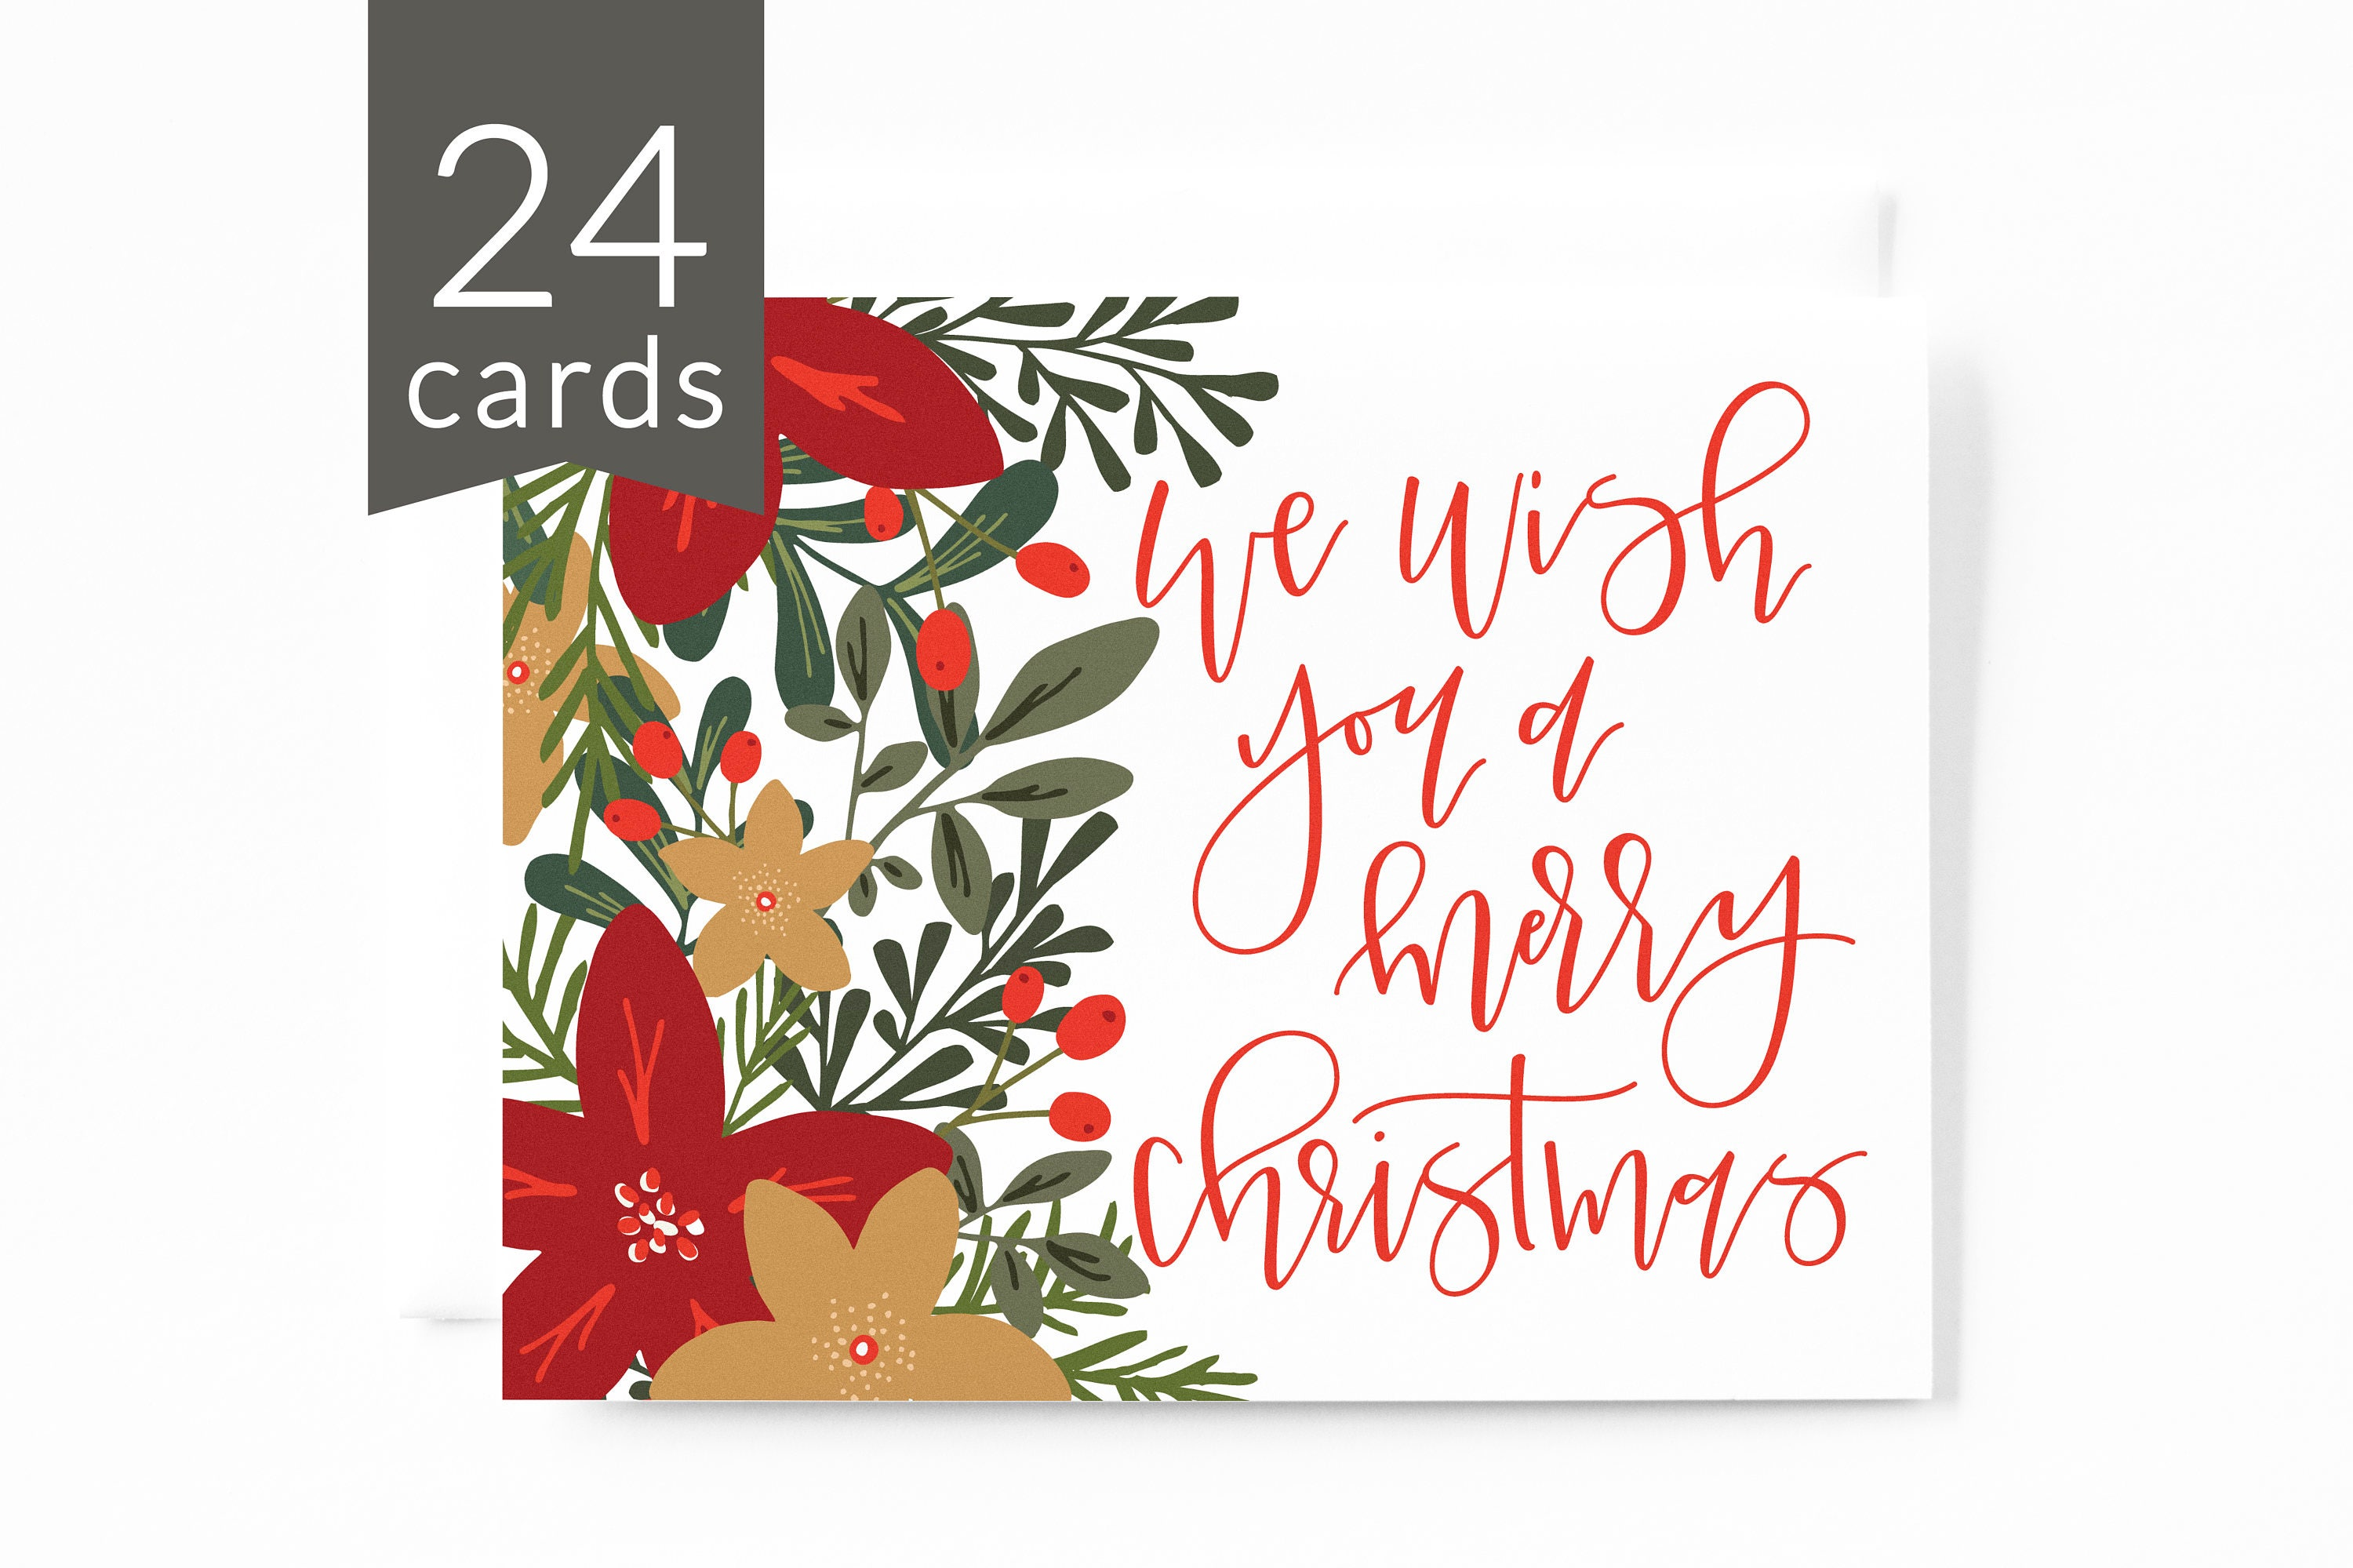 Christmas card set of 24 hand illustrated floral holiday card set christmas card set of 24 hand illustrated floral holiday card set with hand lettered calligraphy m4hsunfo